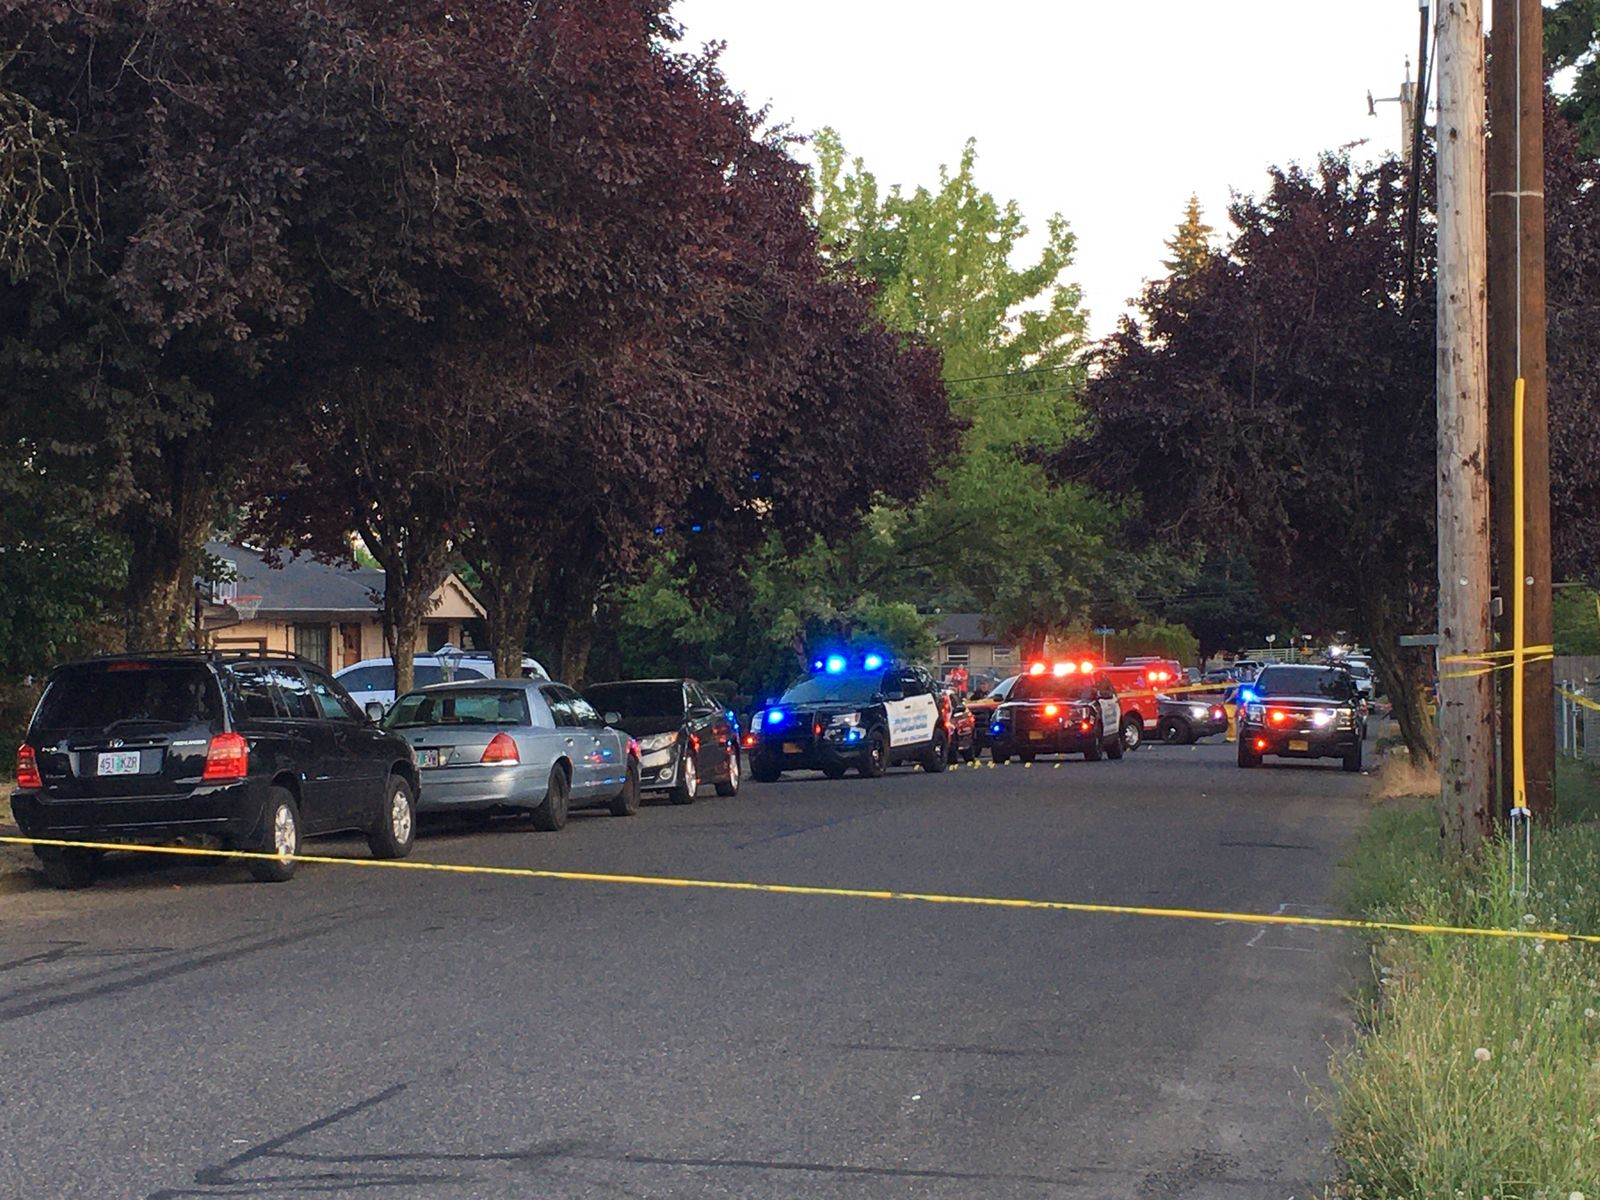 Police in Gresham investigate a shooting Wednesday night, Aug. 5, 2020 that left two children wounded. (Photo: Monty Orrick/KATU Staff)